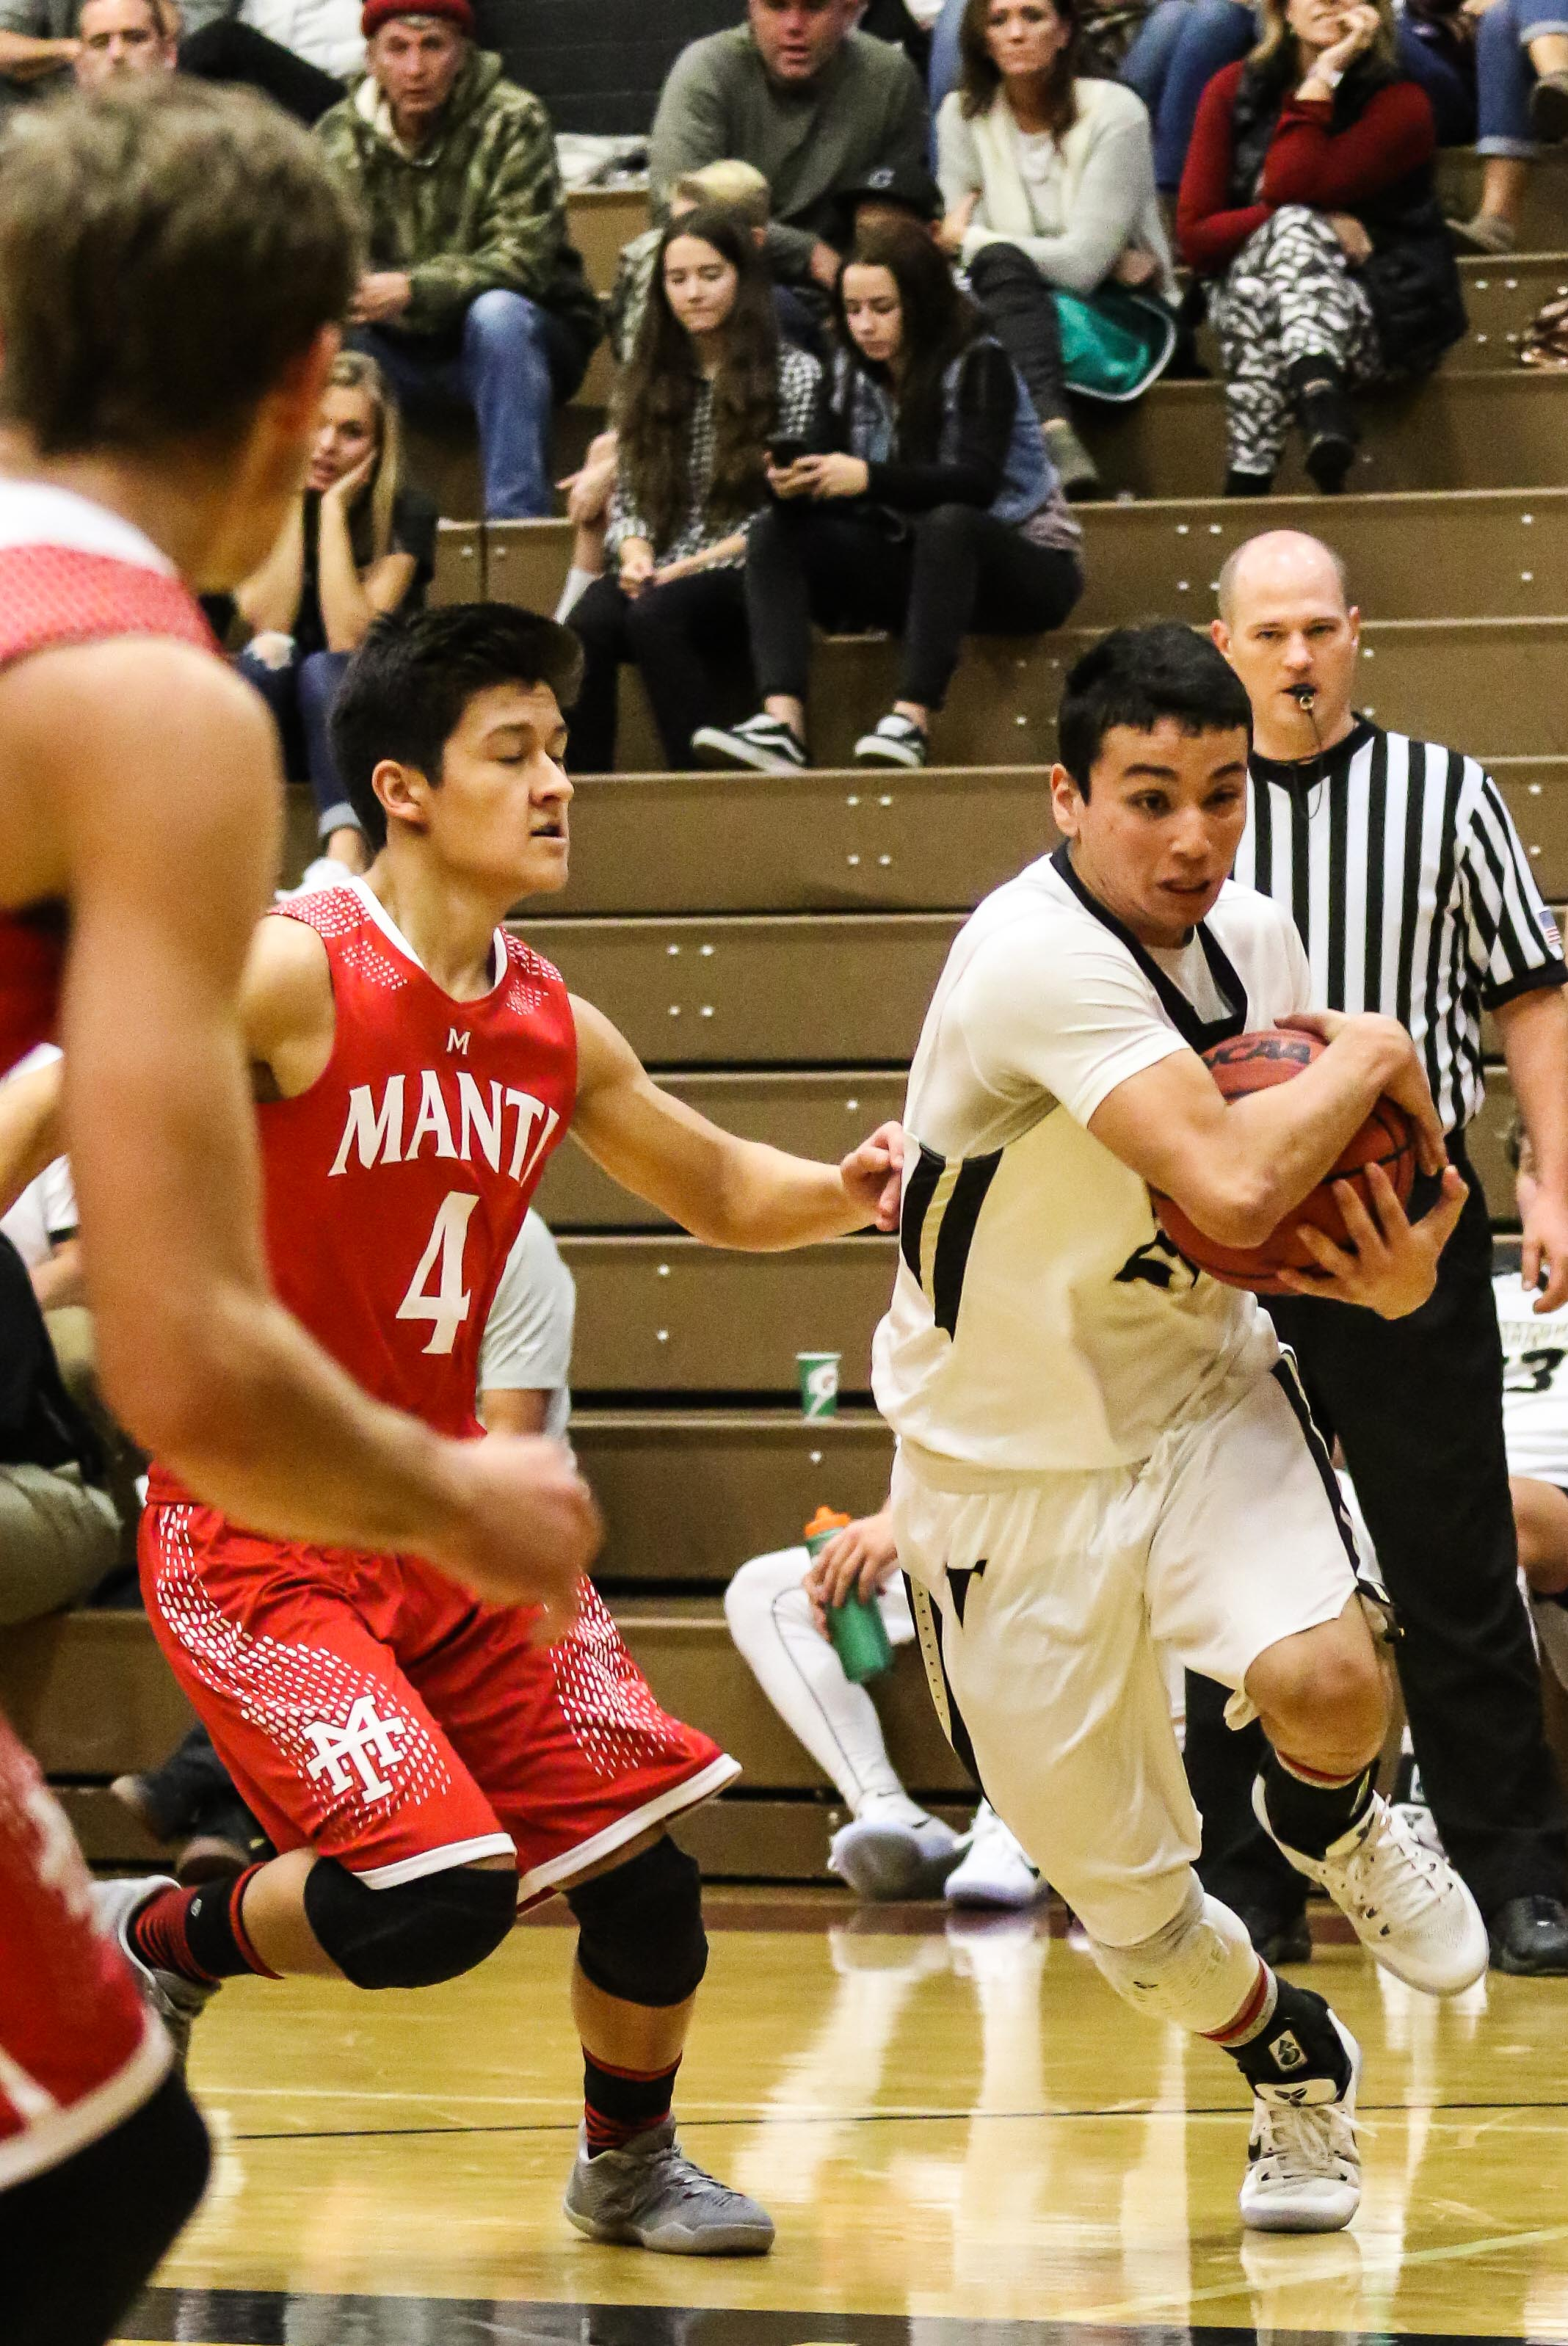 Desert Hills' Isaac Olivas (21), Desert Hills vs Manti, Coach Walker Classic, Boys Basketball, St. George, Utah, Dec. 17, 2016, | Photo by Kevin Luthy, St. George News